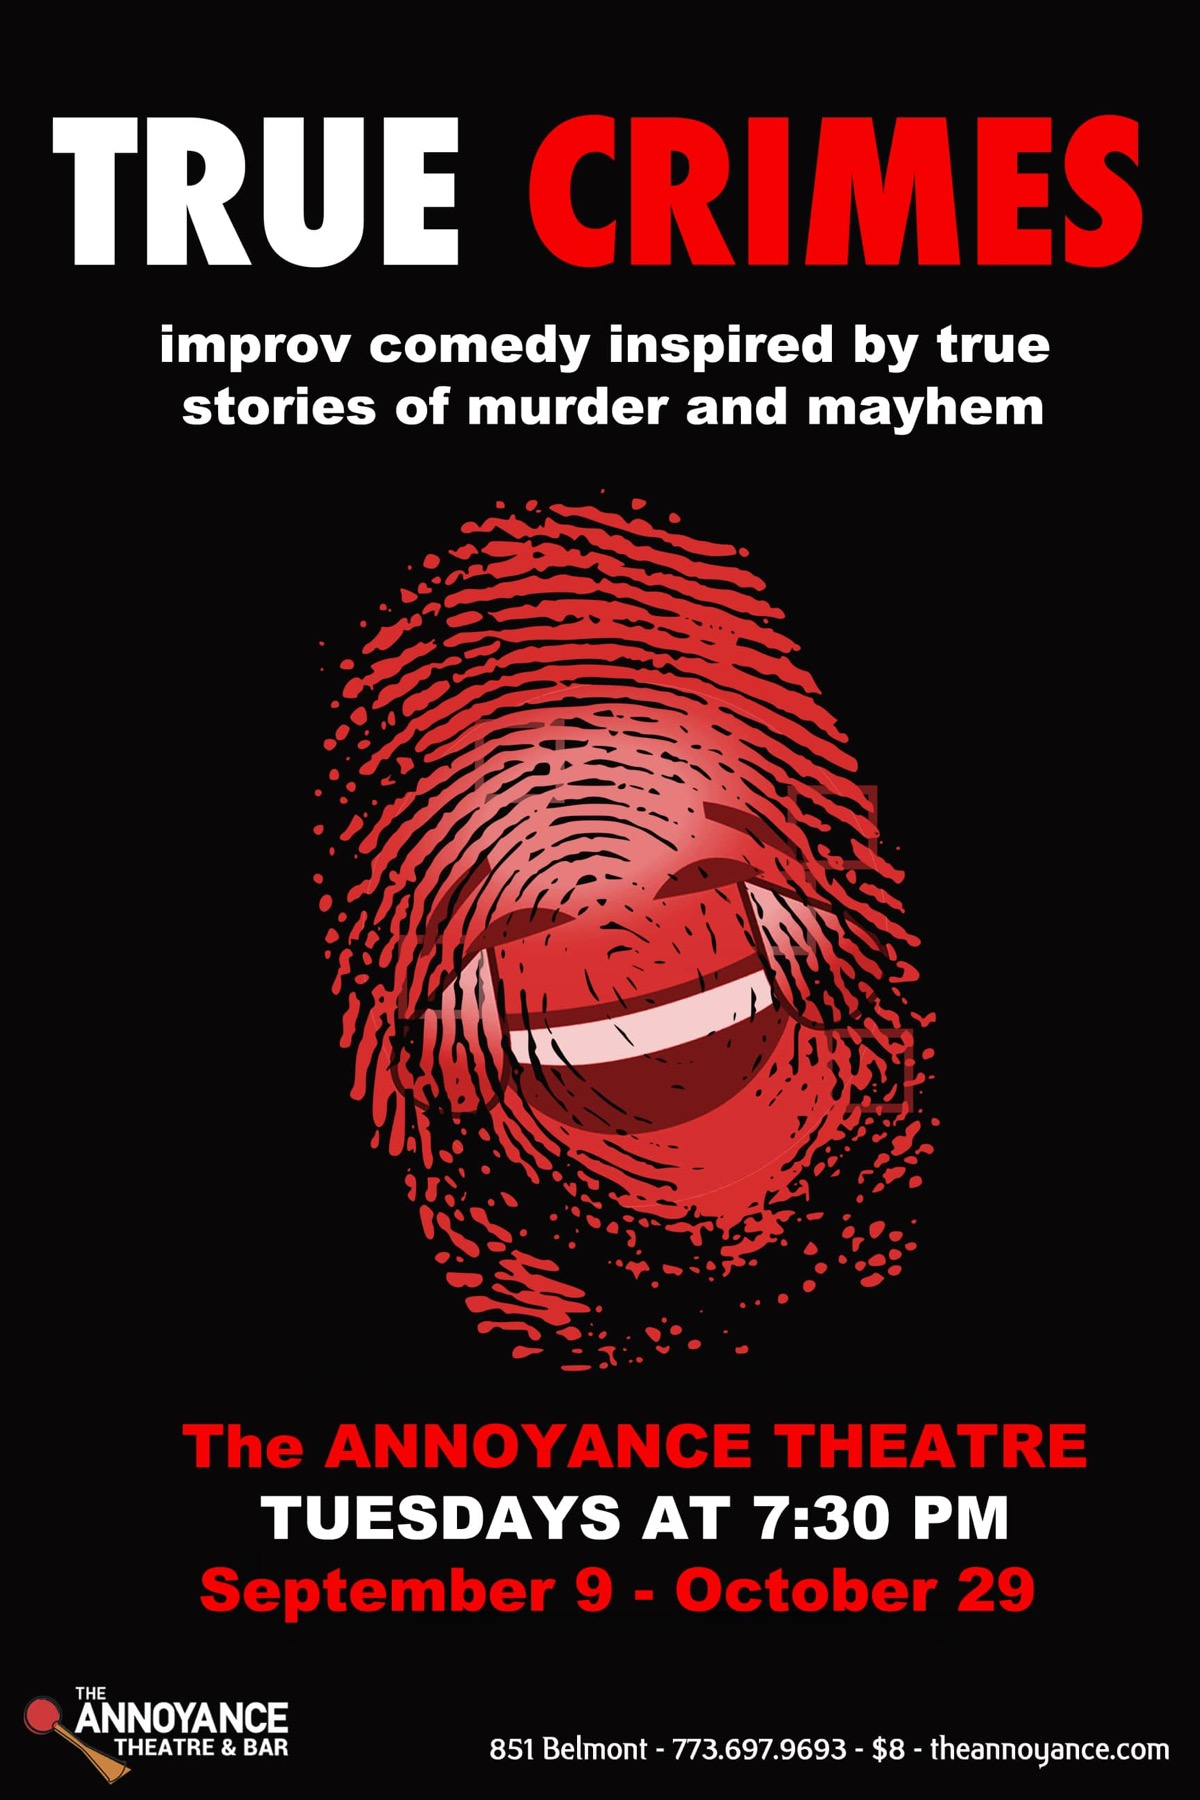 Improv at The Annoyance: True Crimes